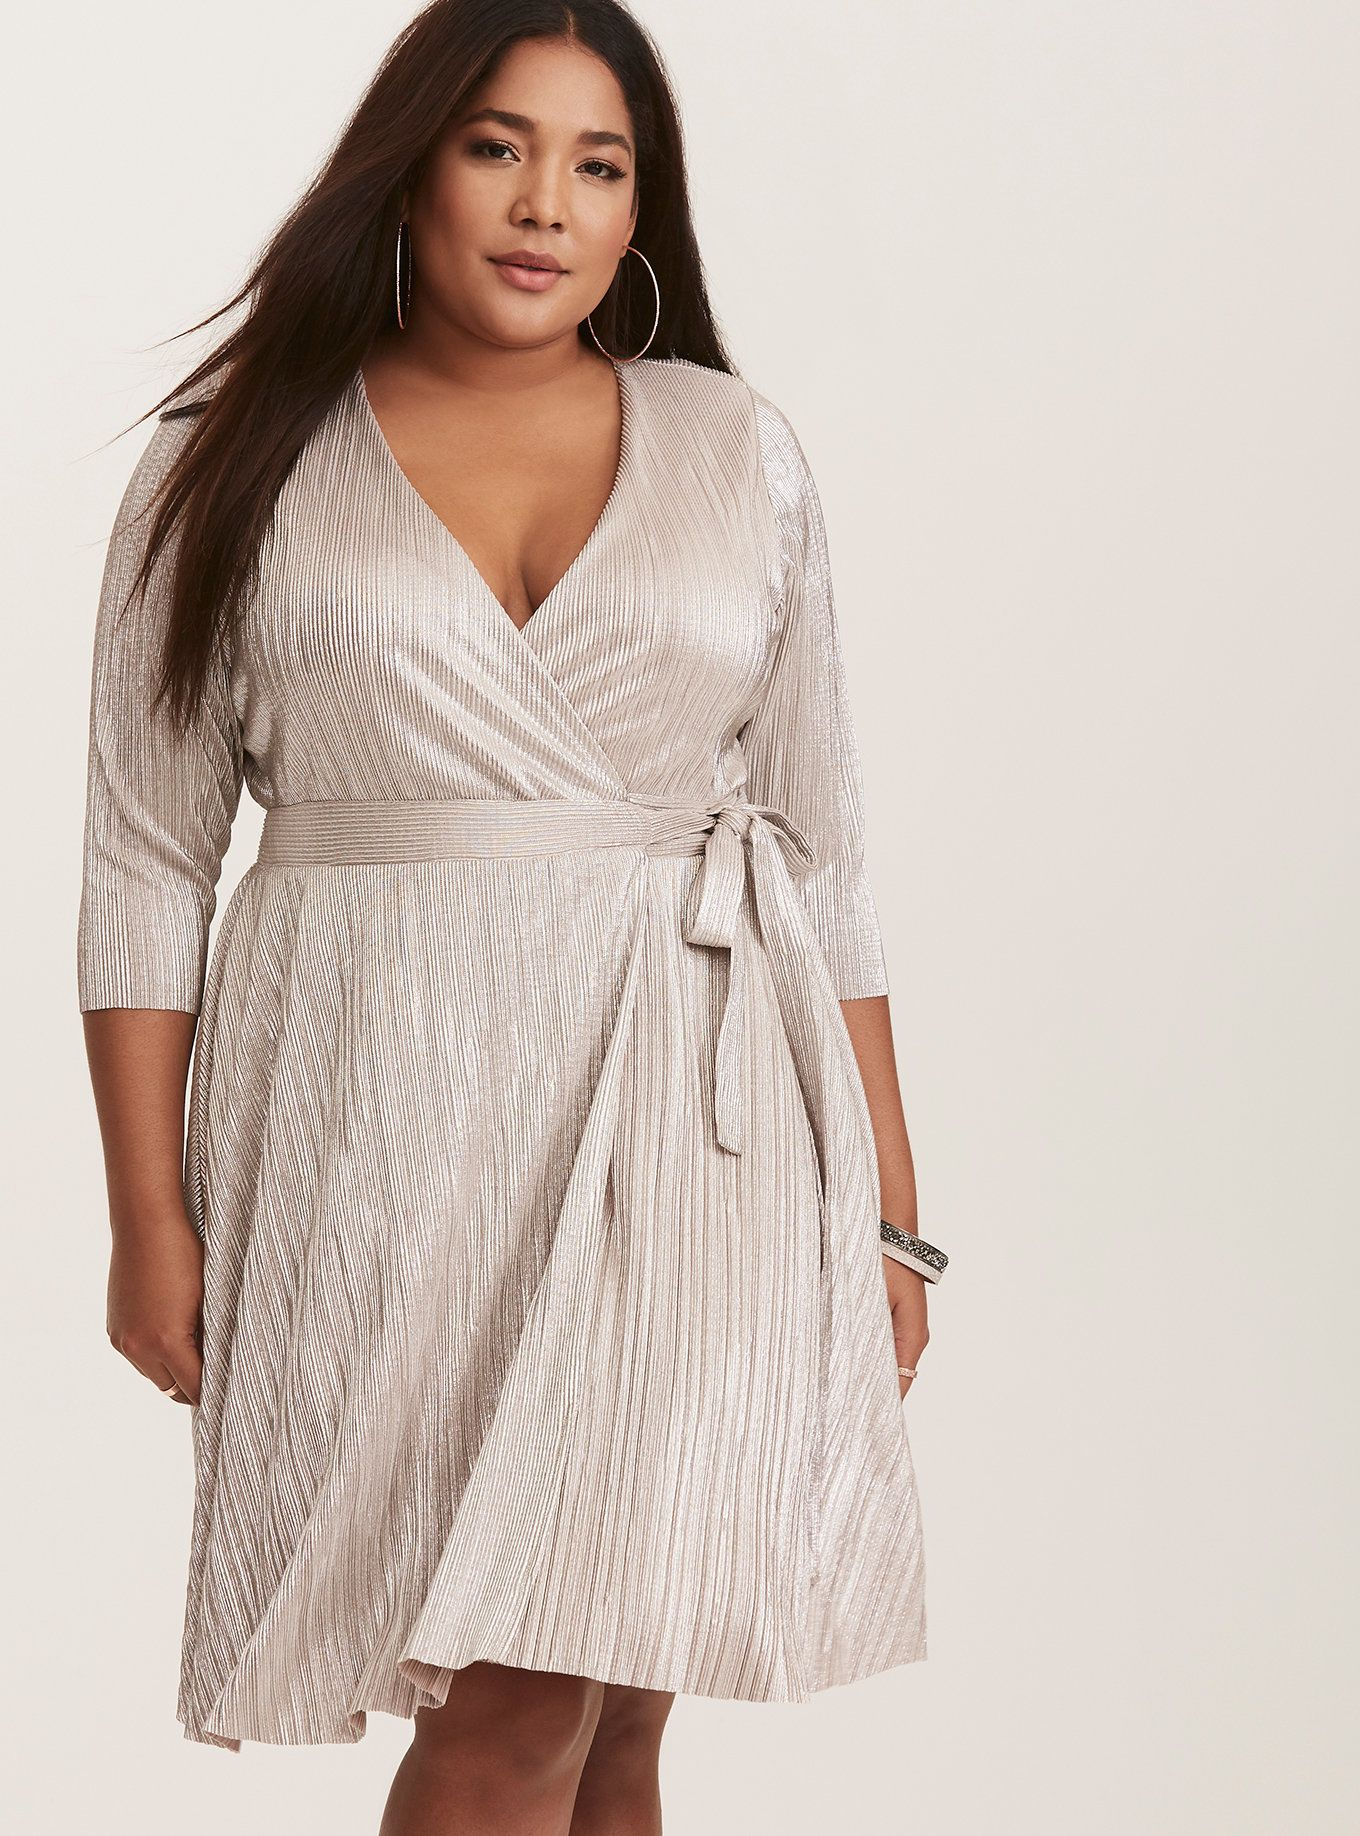 Silver Metallic Pleated Wrap Dress in 2019 | 2016 List | Dresses ...